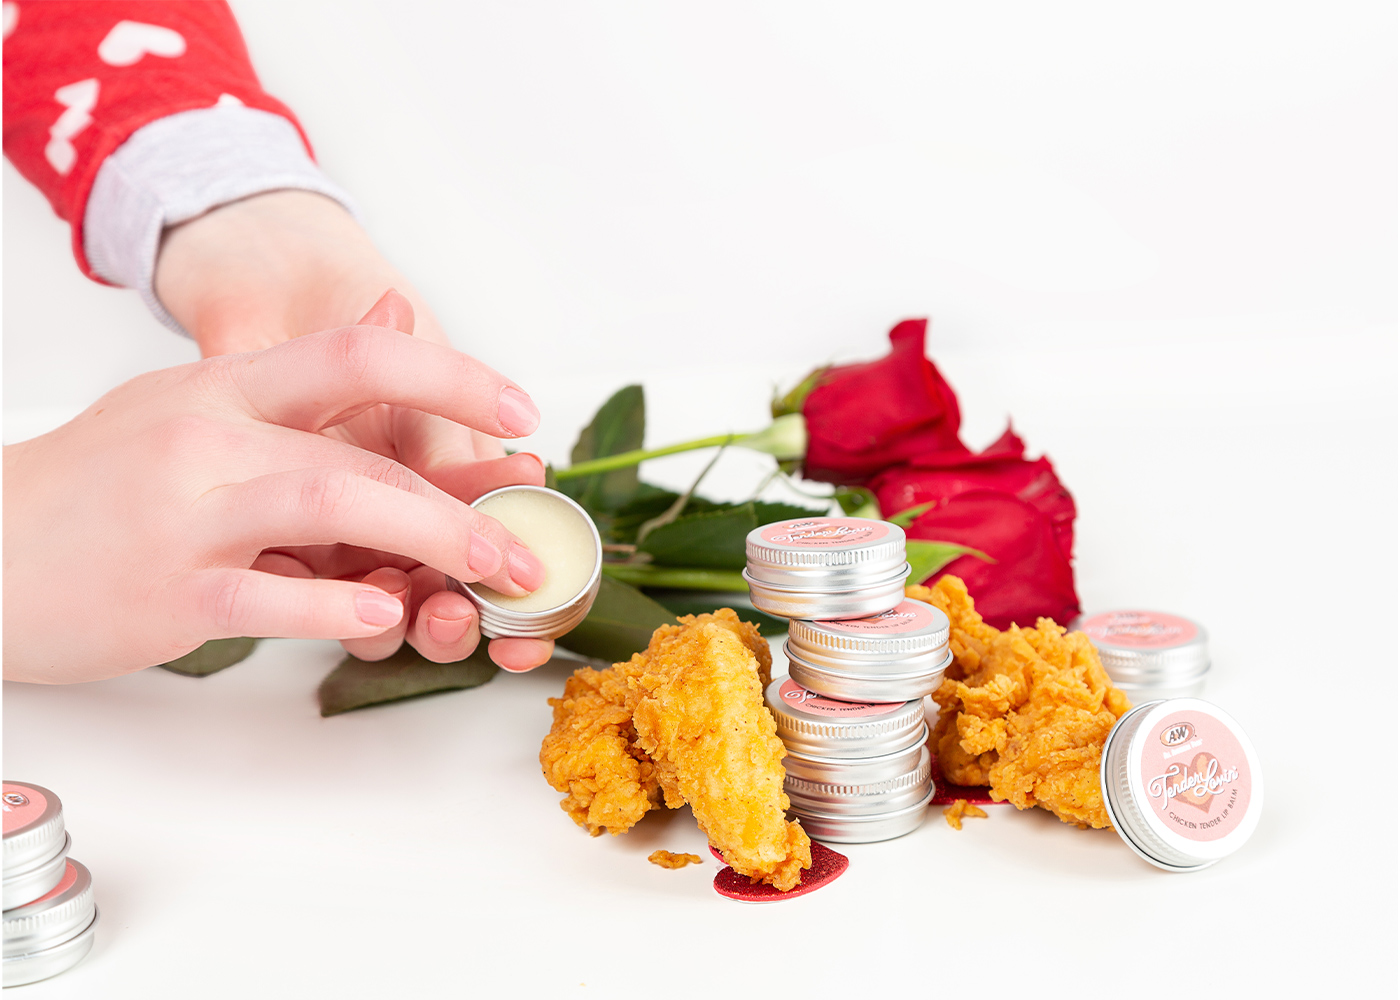 Hand holding tin of Tender Lovin' Lip Balm. Roses and A&W Chicken Tenders are in the background.